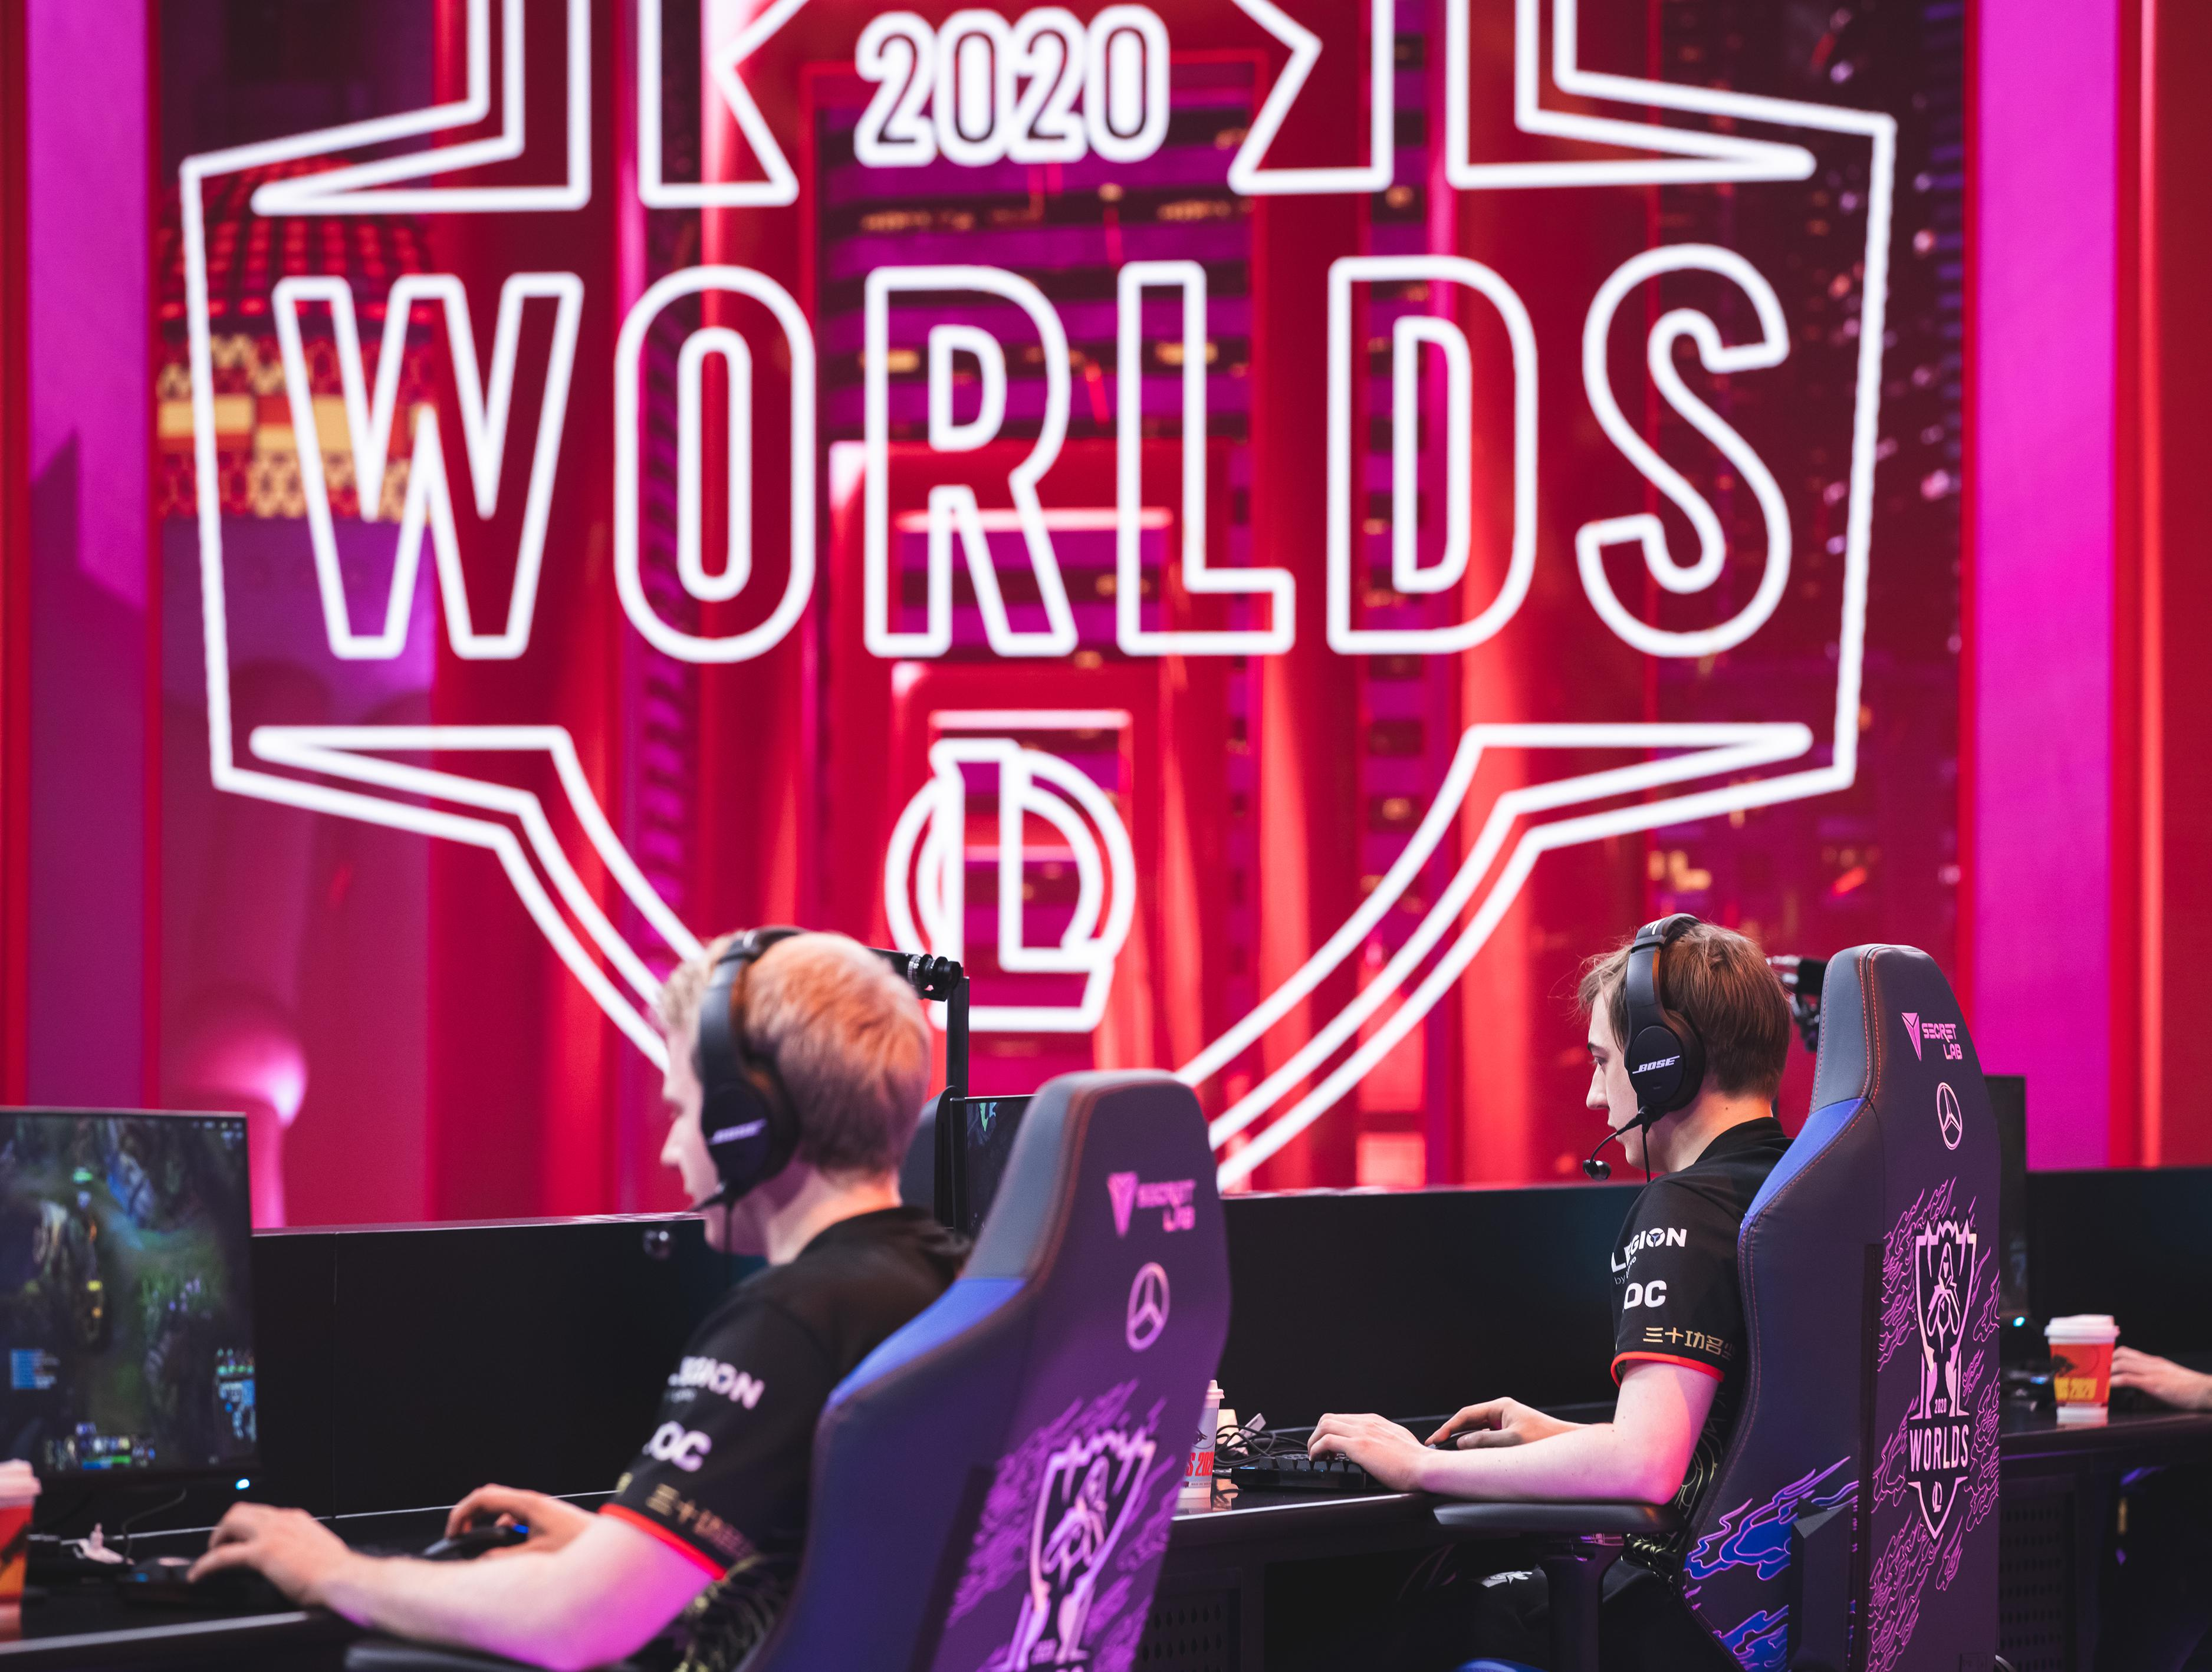 SHANGHAI, CHINA - OCTOBER 24: Rasmus Winther aka Caps and Marcin Jankowski aka Jankos(left) of G2 Esports react during the game between DAMWON Gaming and G2 Esports on Day 1 of the League of Legends 2020 Worlds Semi Finals at SMT studio on October 24, 2020 in Shanghai, China. (Photo by Yicun Liu/Riot Games/Riot Games Inc. via Getty Images)